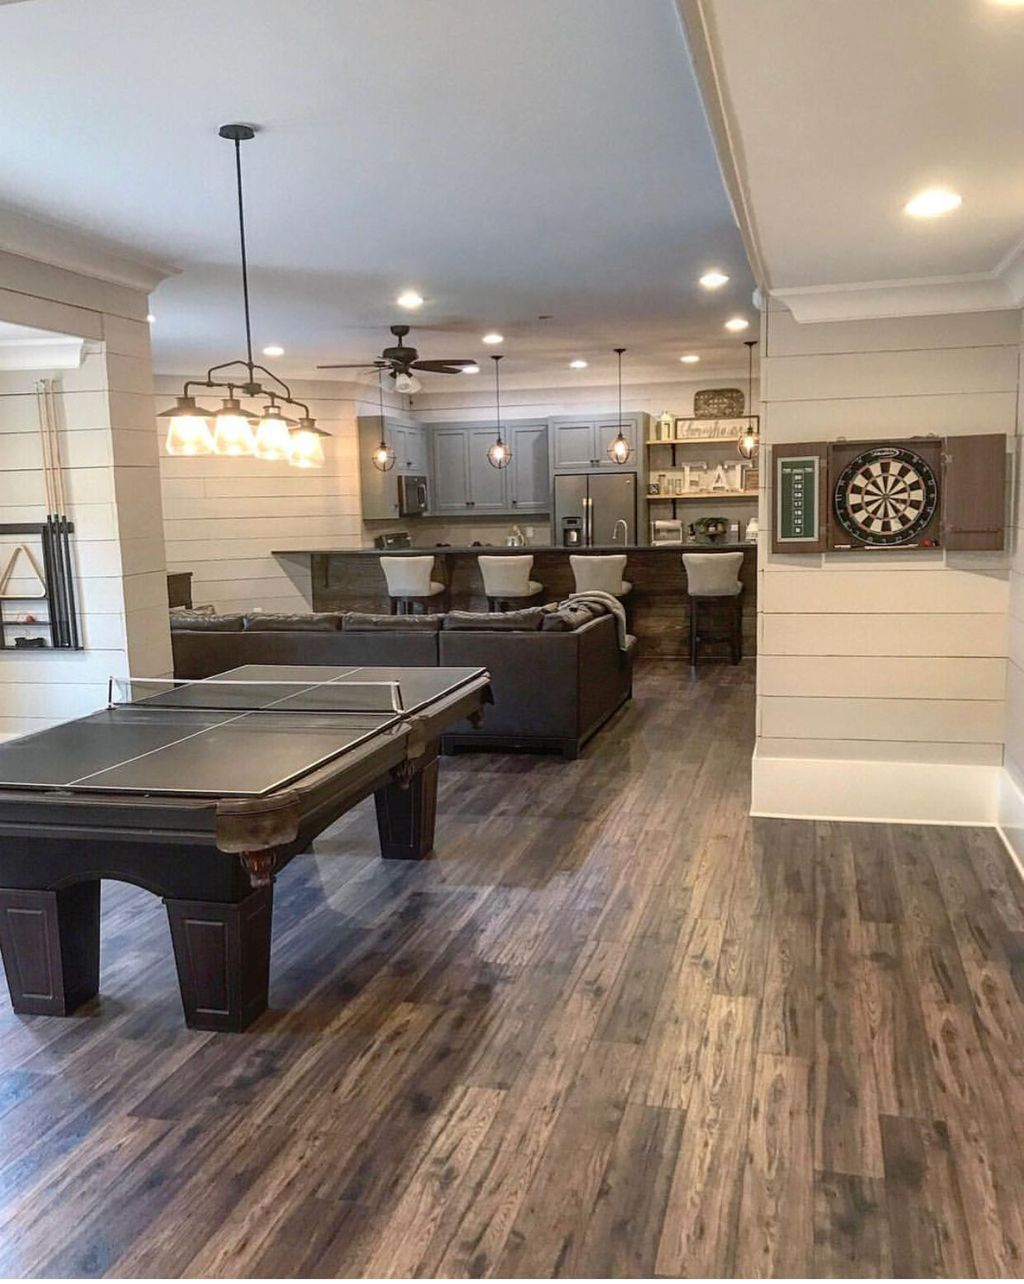 Adorable Basement Remodel Ideas For Upgrading Your Room Design 36